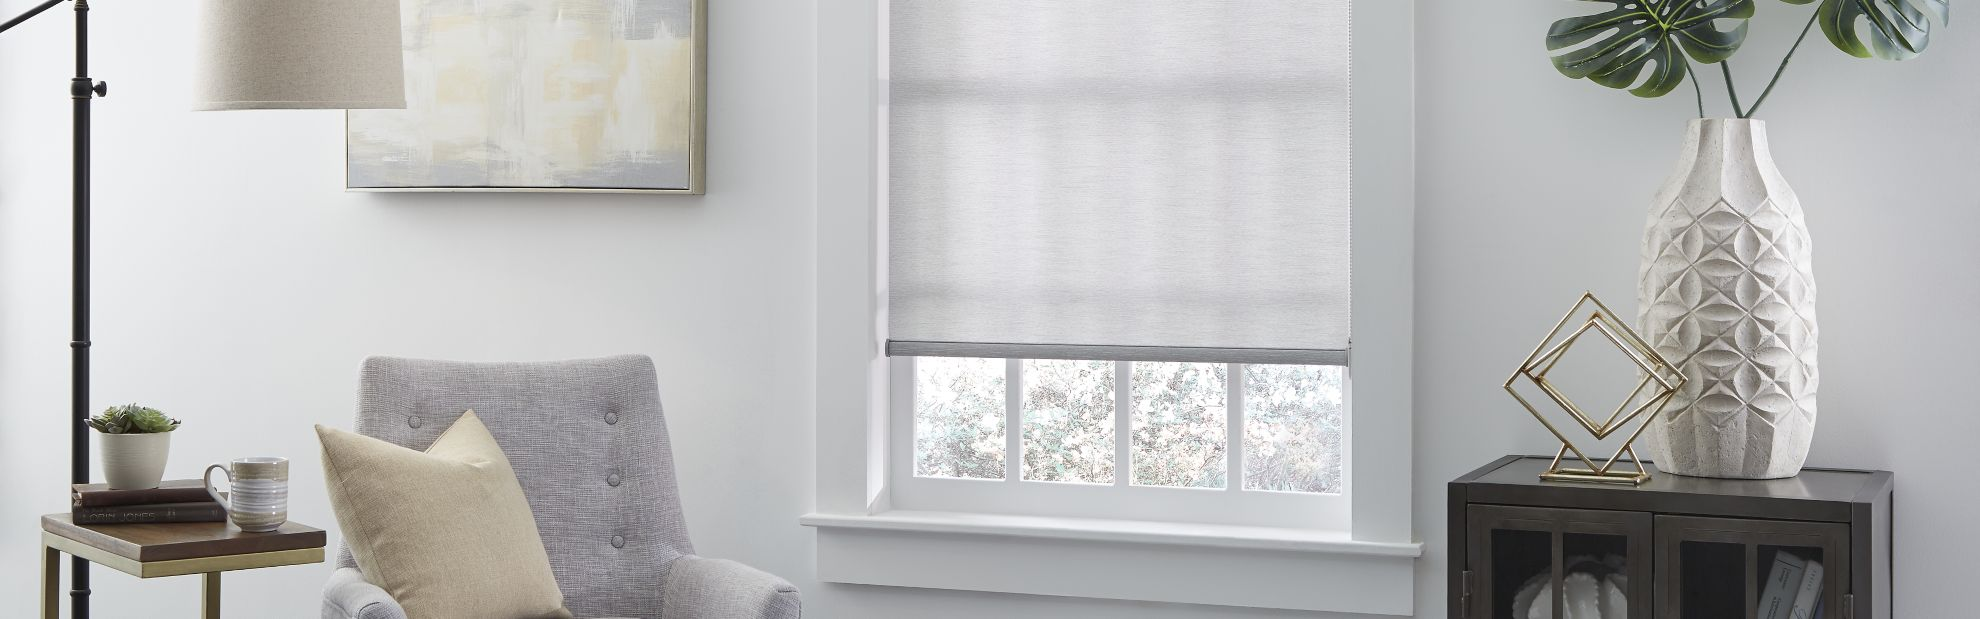 Custom Window Treatments In Atlanta Ga Stoneside Blinds